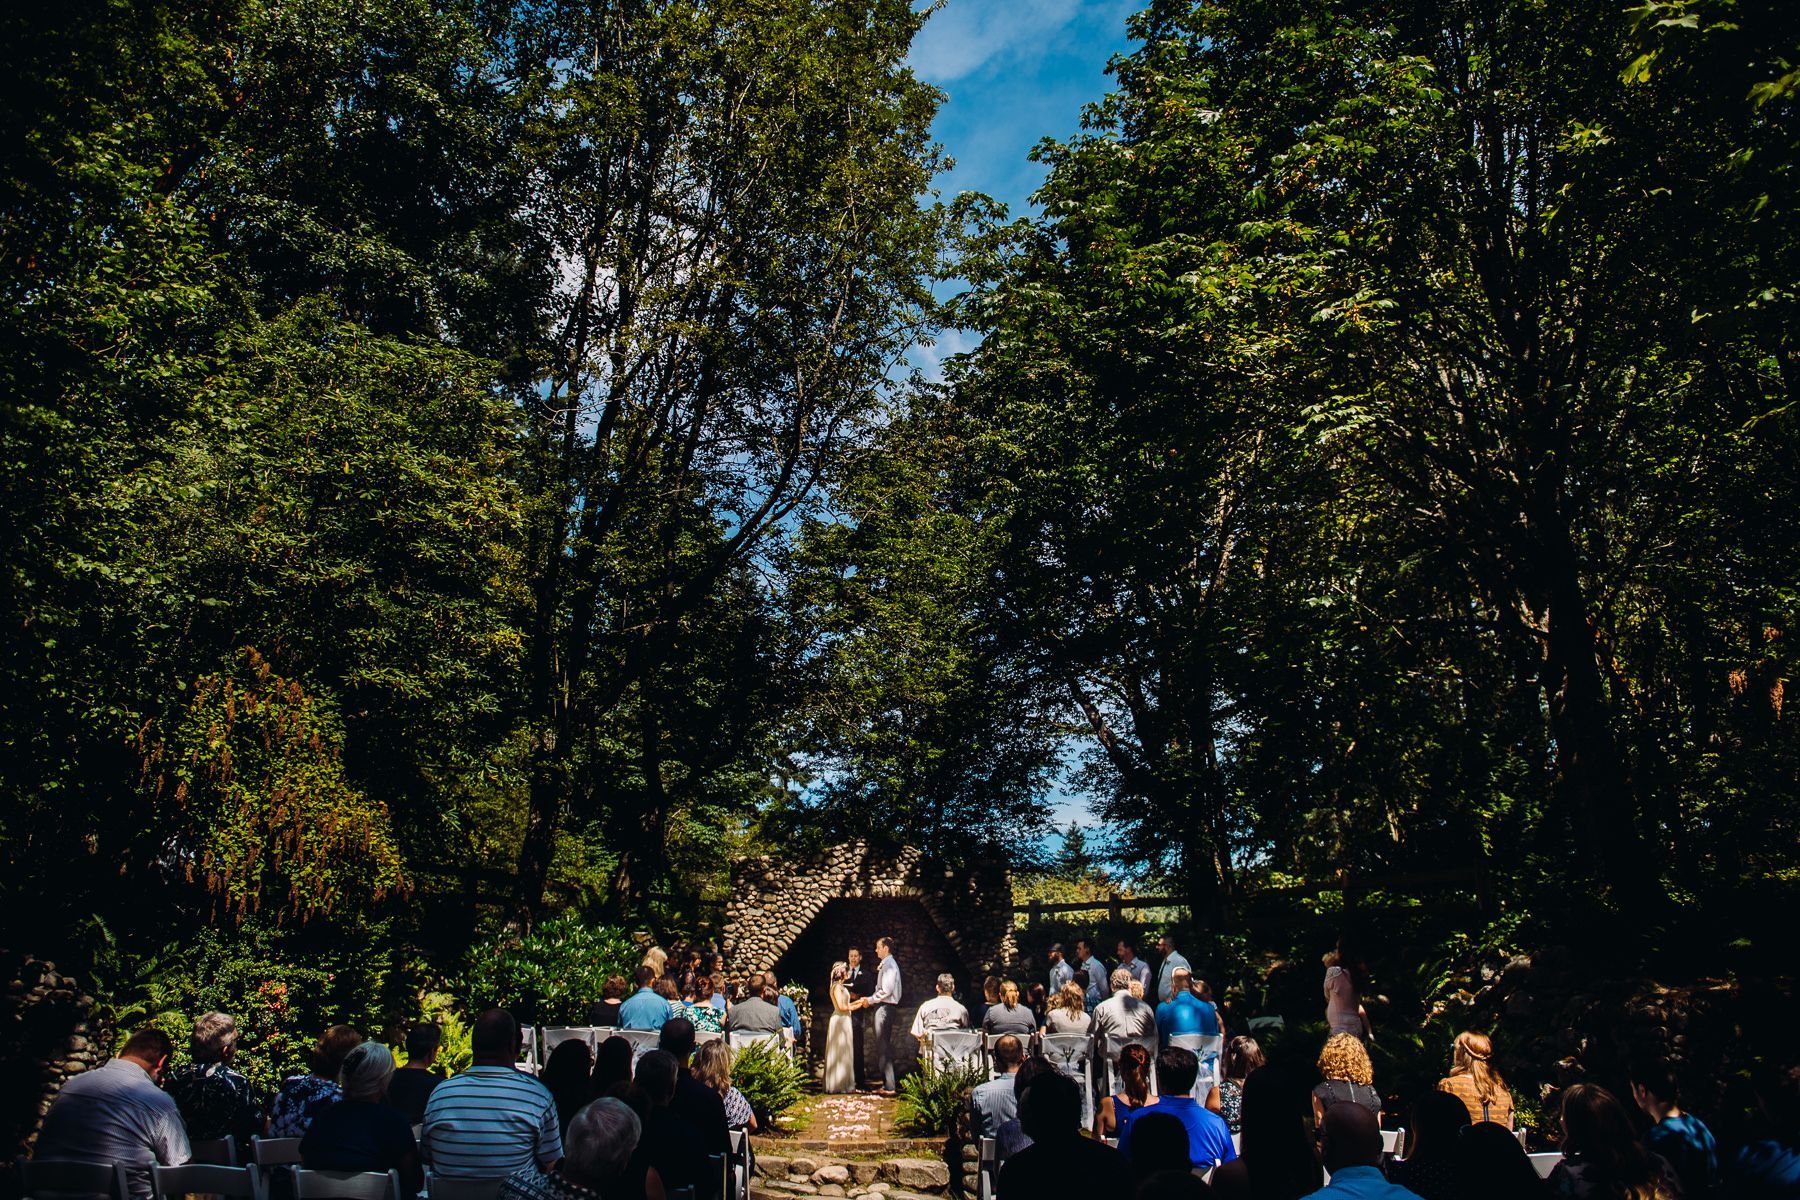 st. edward state park wedding ceremony